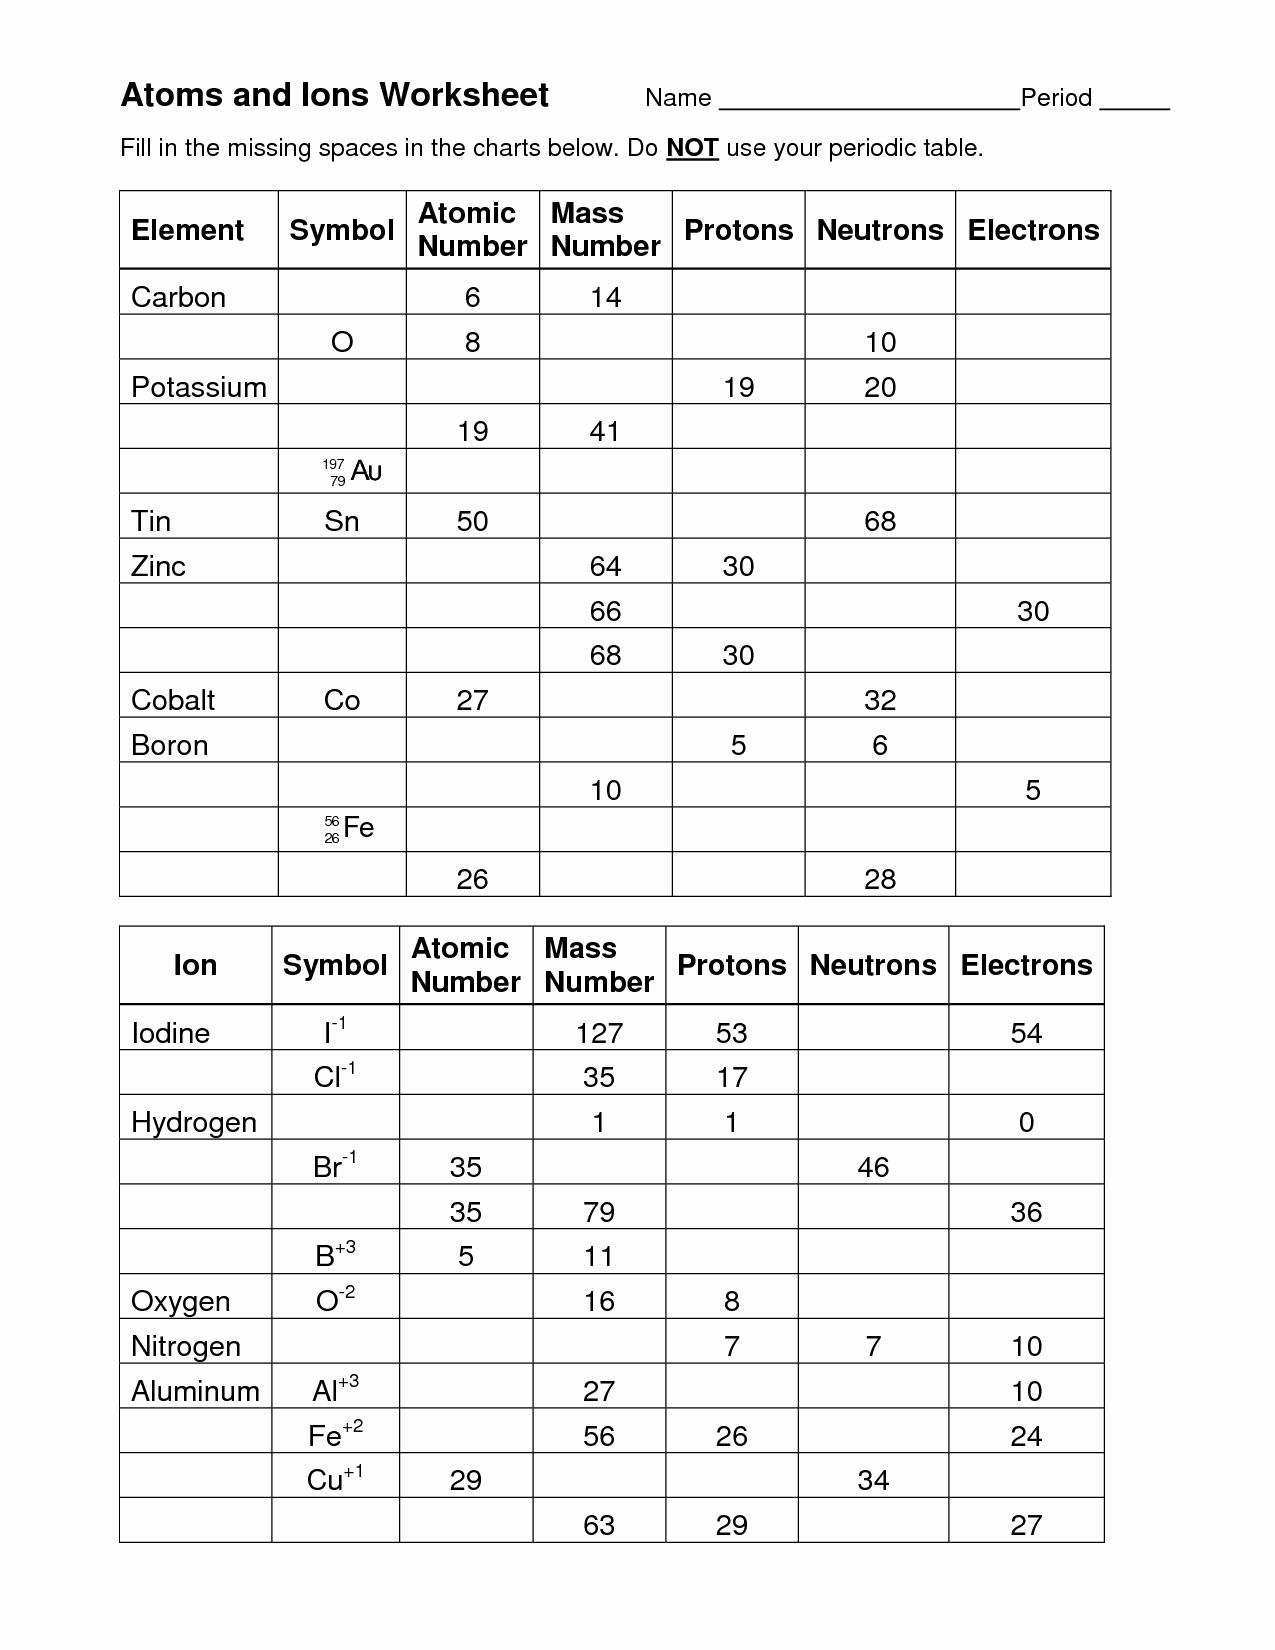 Isotopes Ions and atoms Worksheet Unique 13 Best Of Element Symbols Worksheet Answer Key